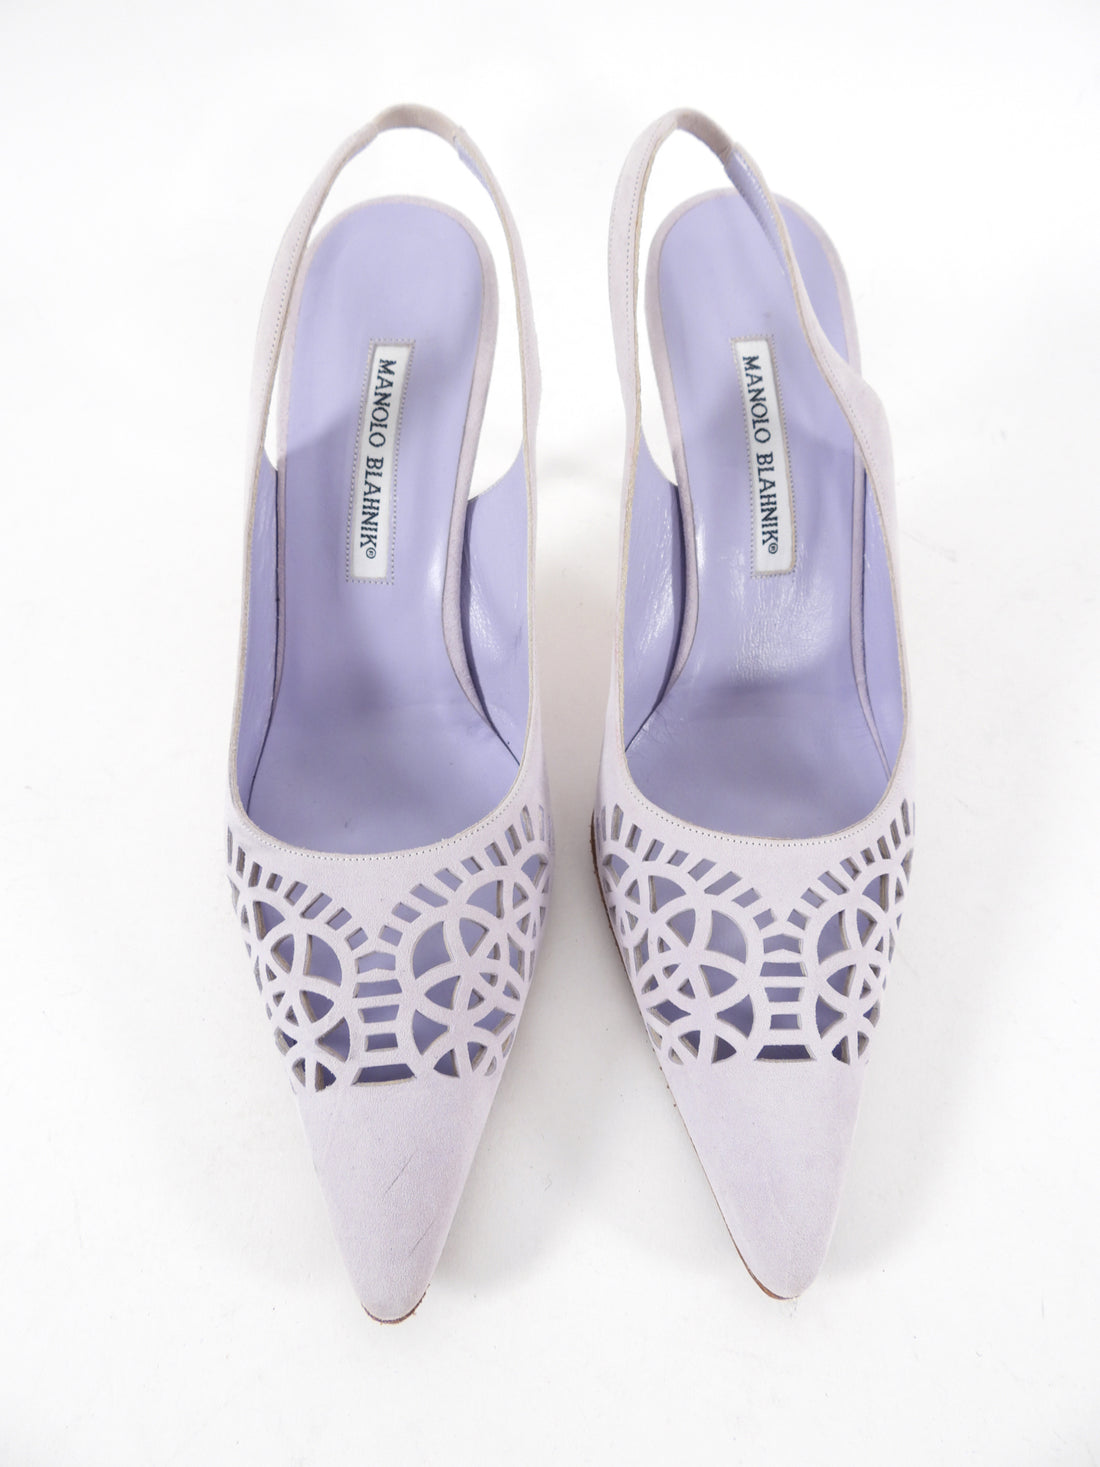 Manolo Blahnik Lilac Purple Perforated Suede Slingback 90mm Heels - 40